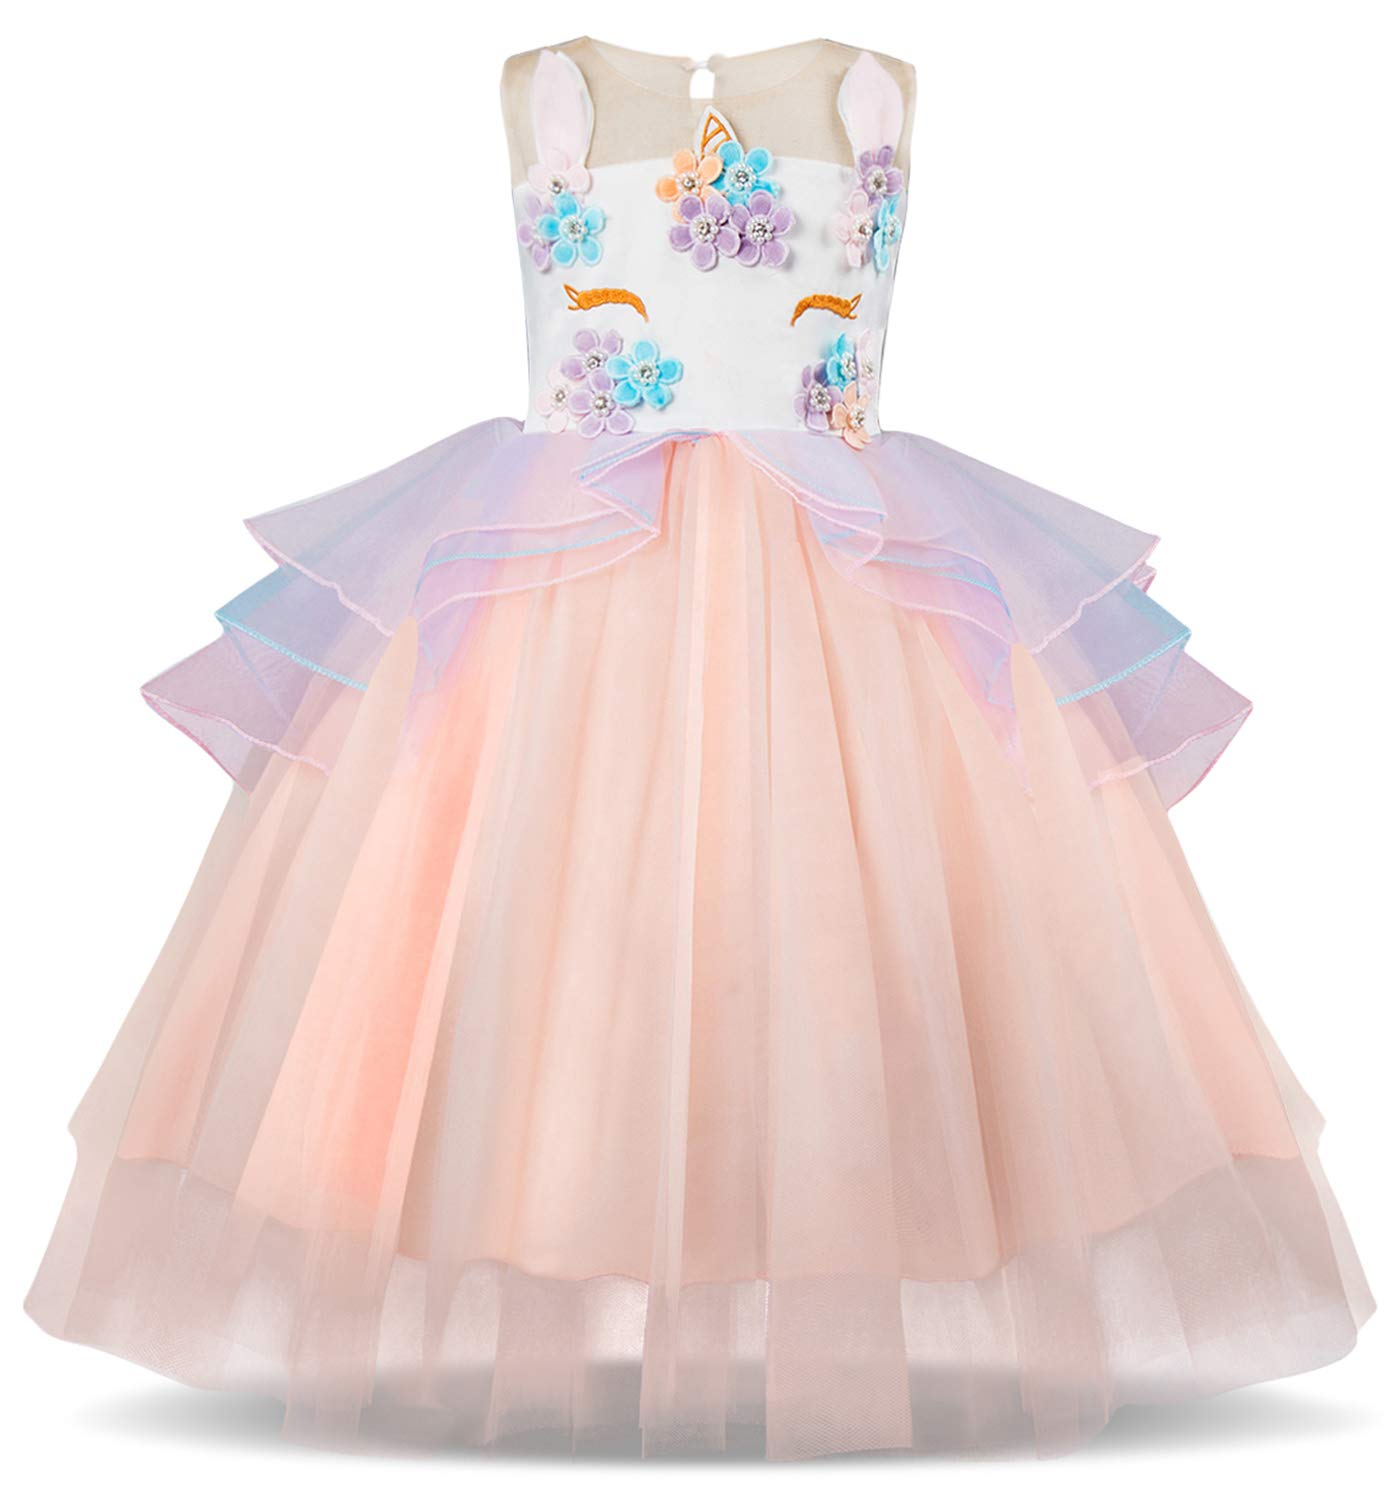 TTYAOVO Kids Unicorn Costume Dress Girl Princess Flower Pageant Party Tutu Dresses Size 5-6 Years Pink